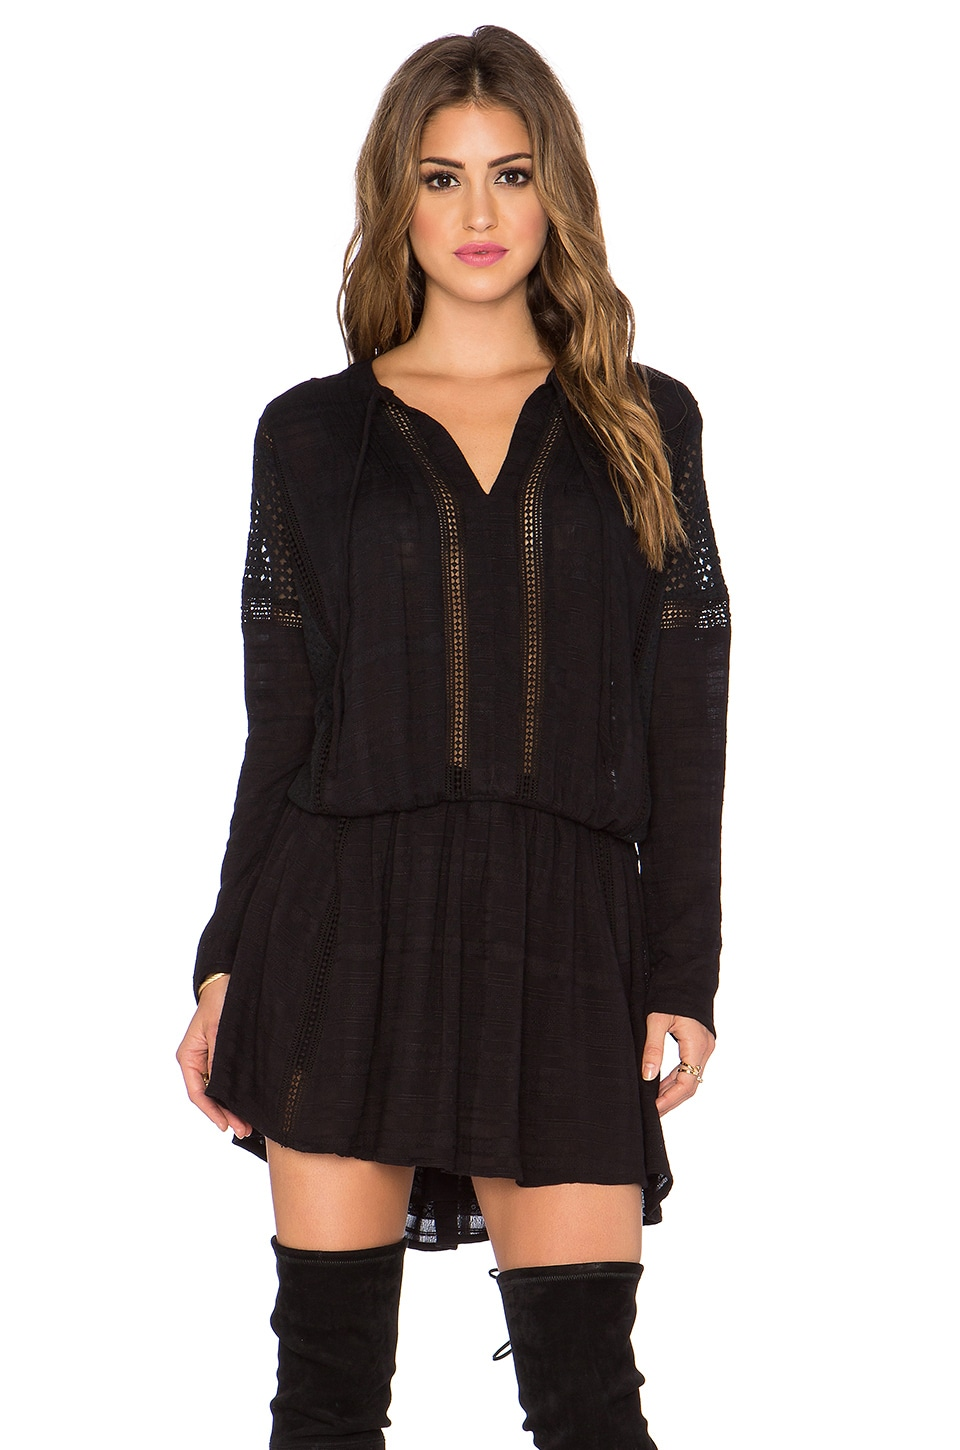 Free People Nomad Peasant Dress in Black